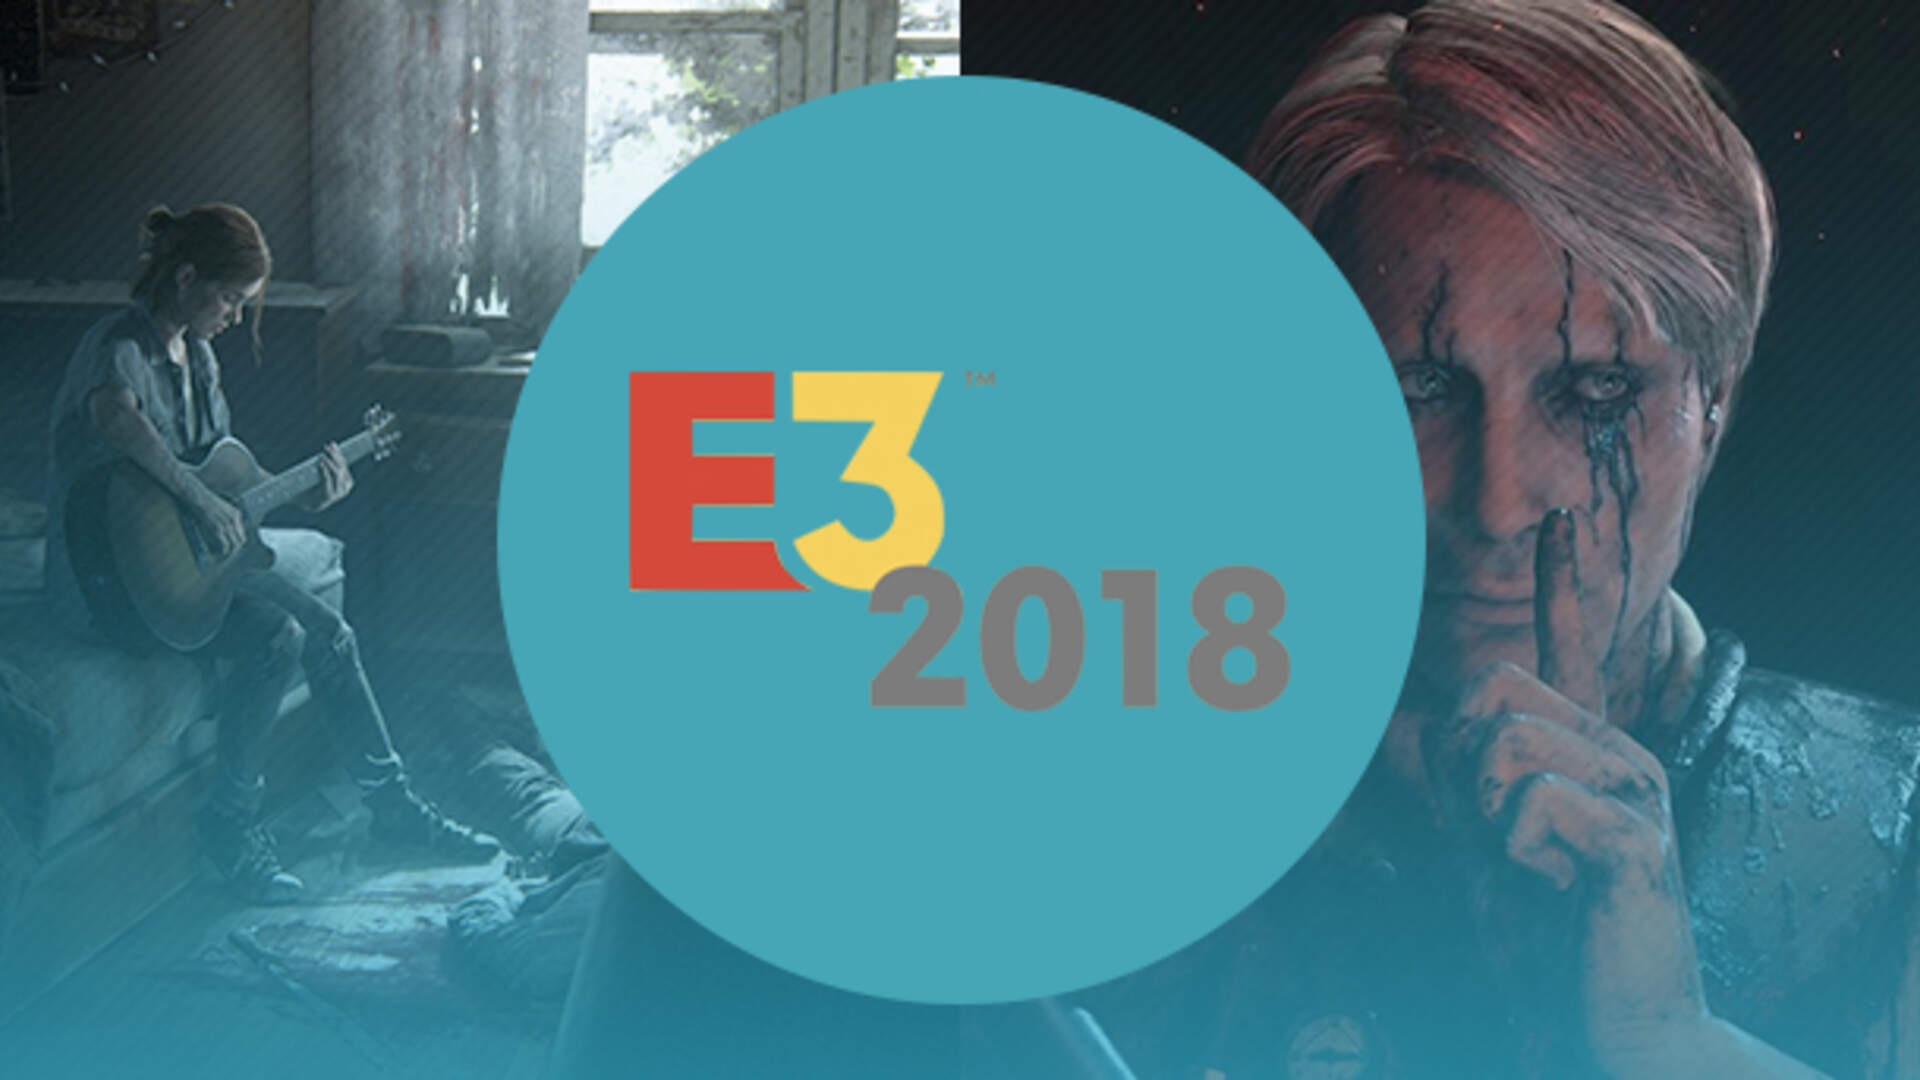 E3 2018 Conferences and Announcements